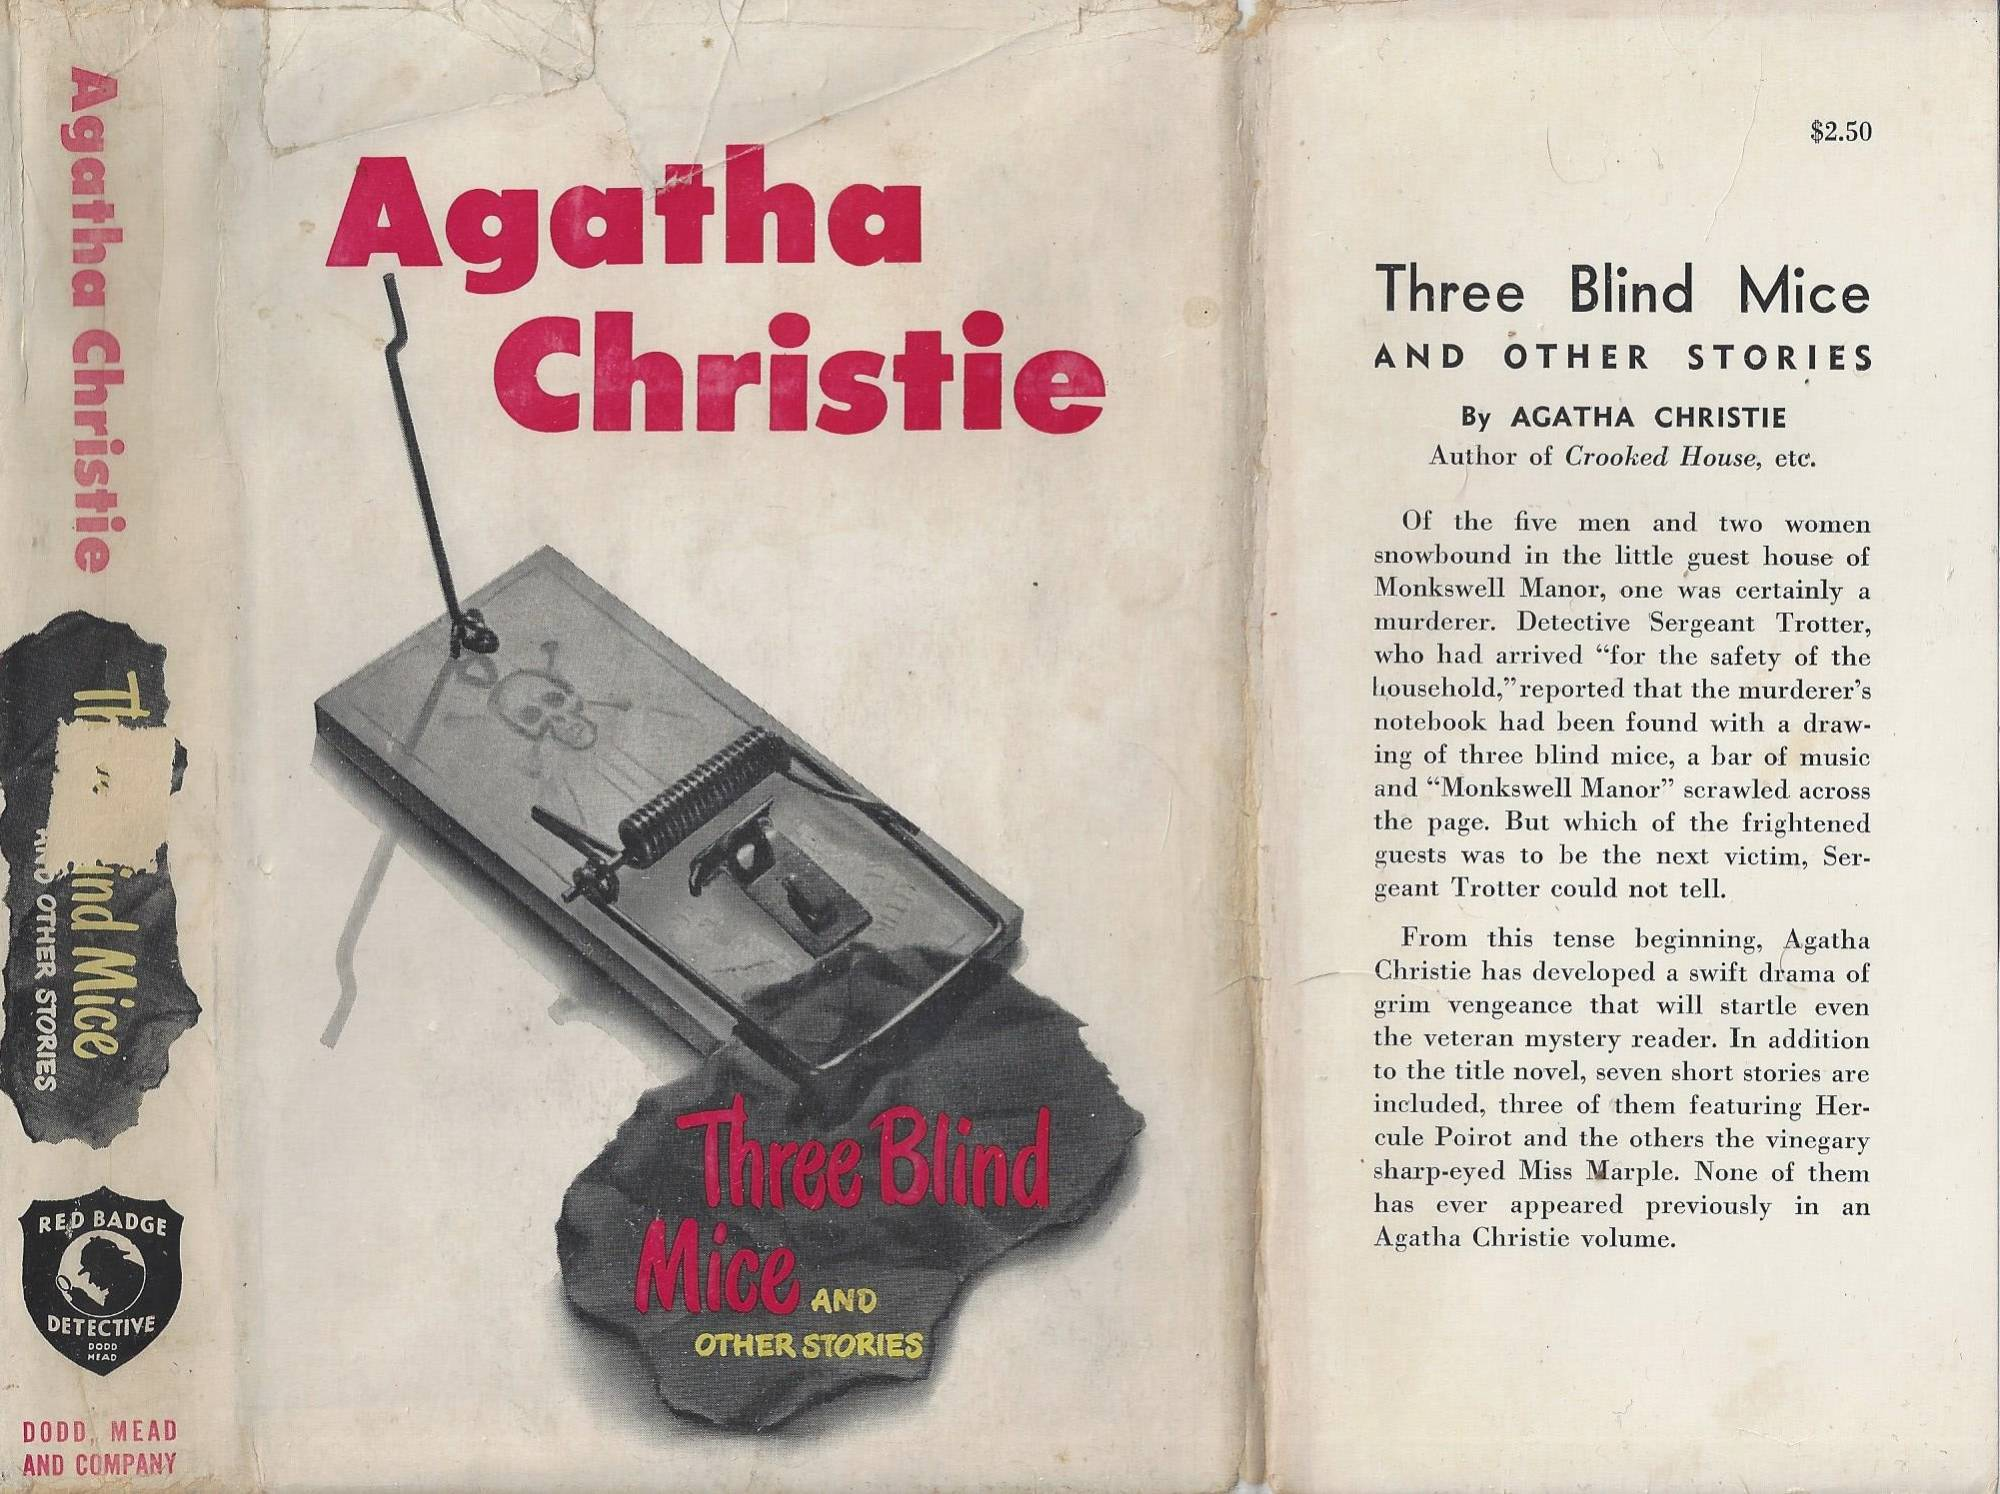 A first edition copy